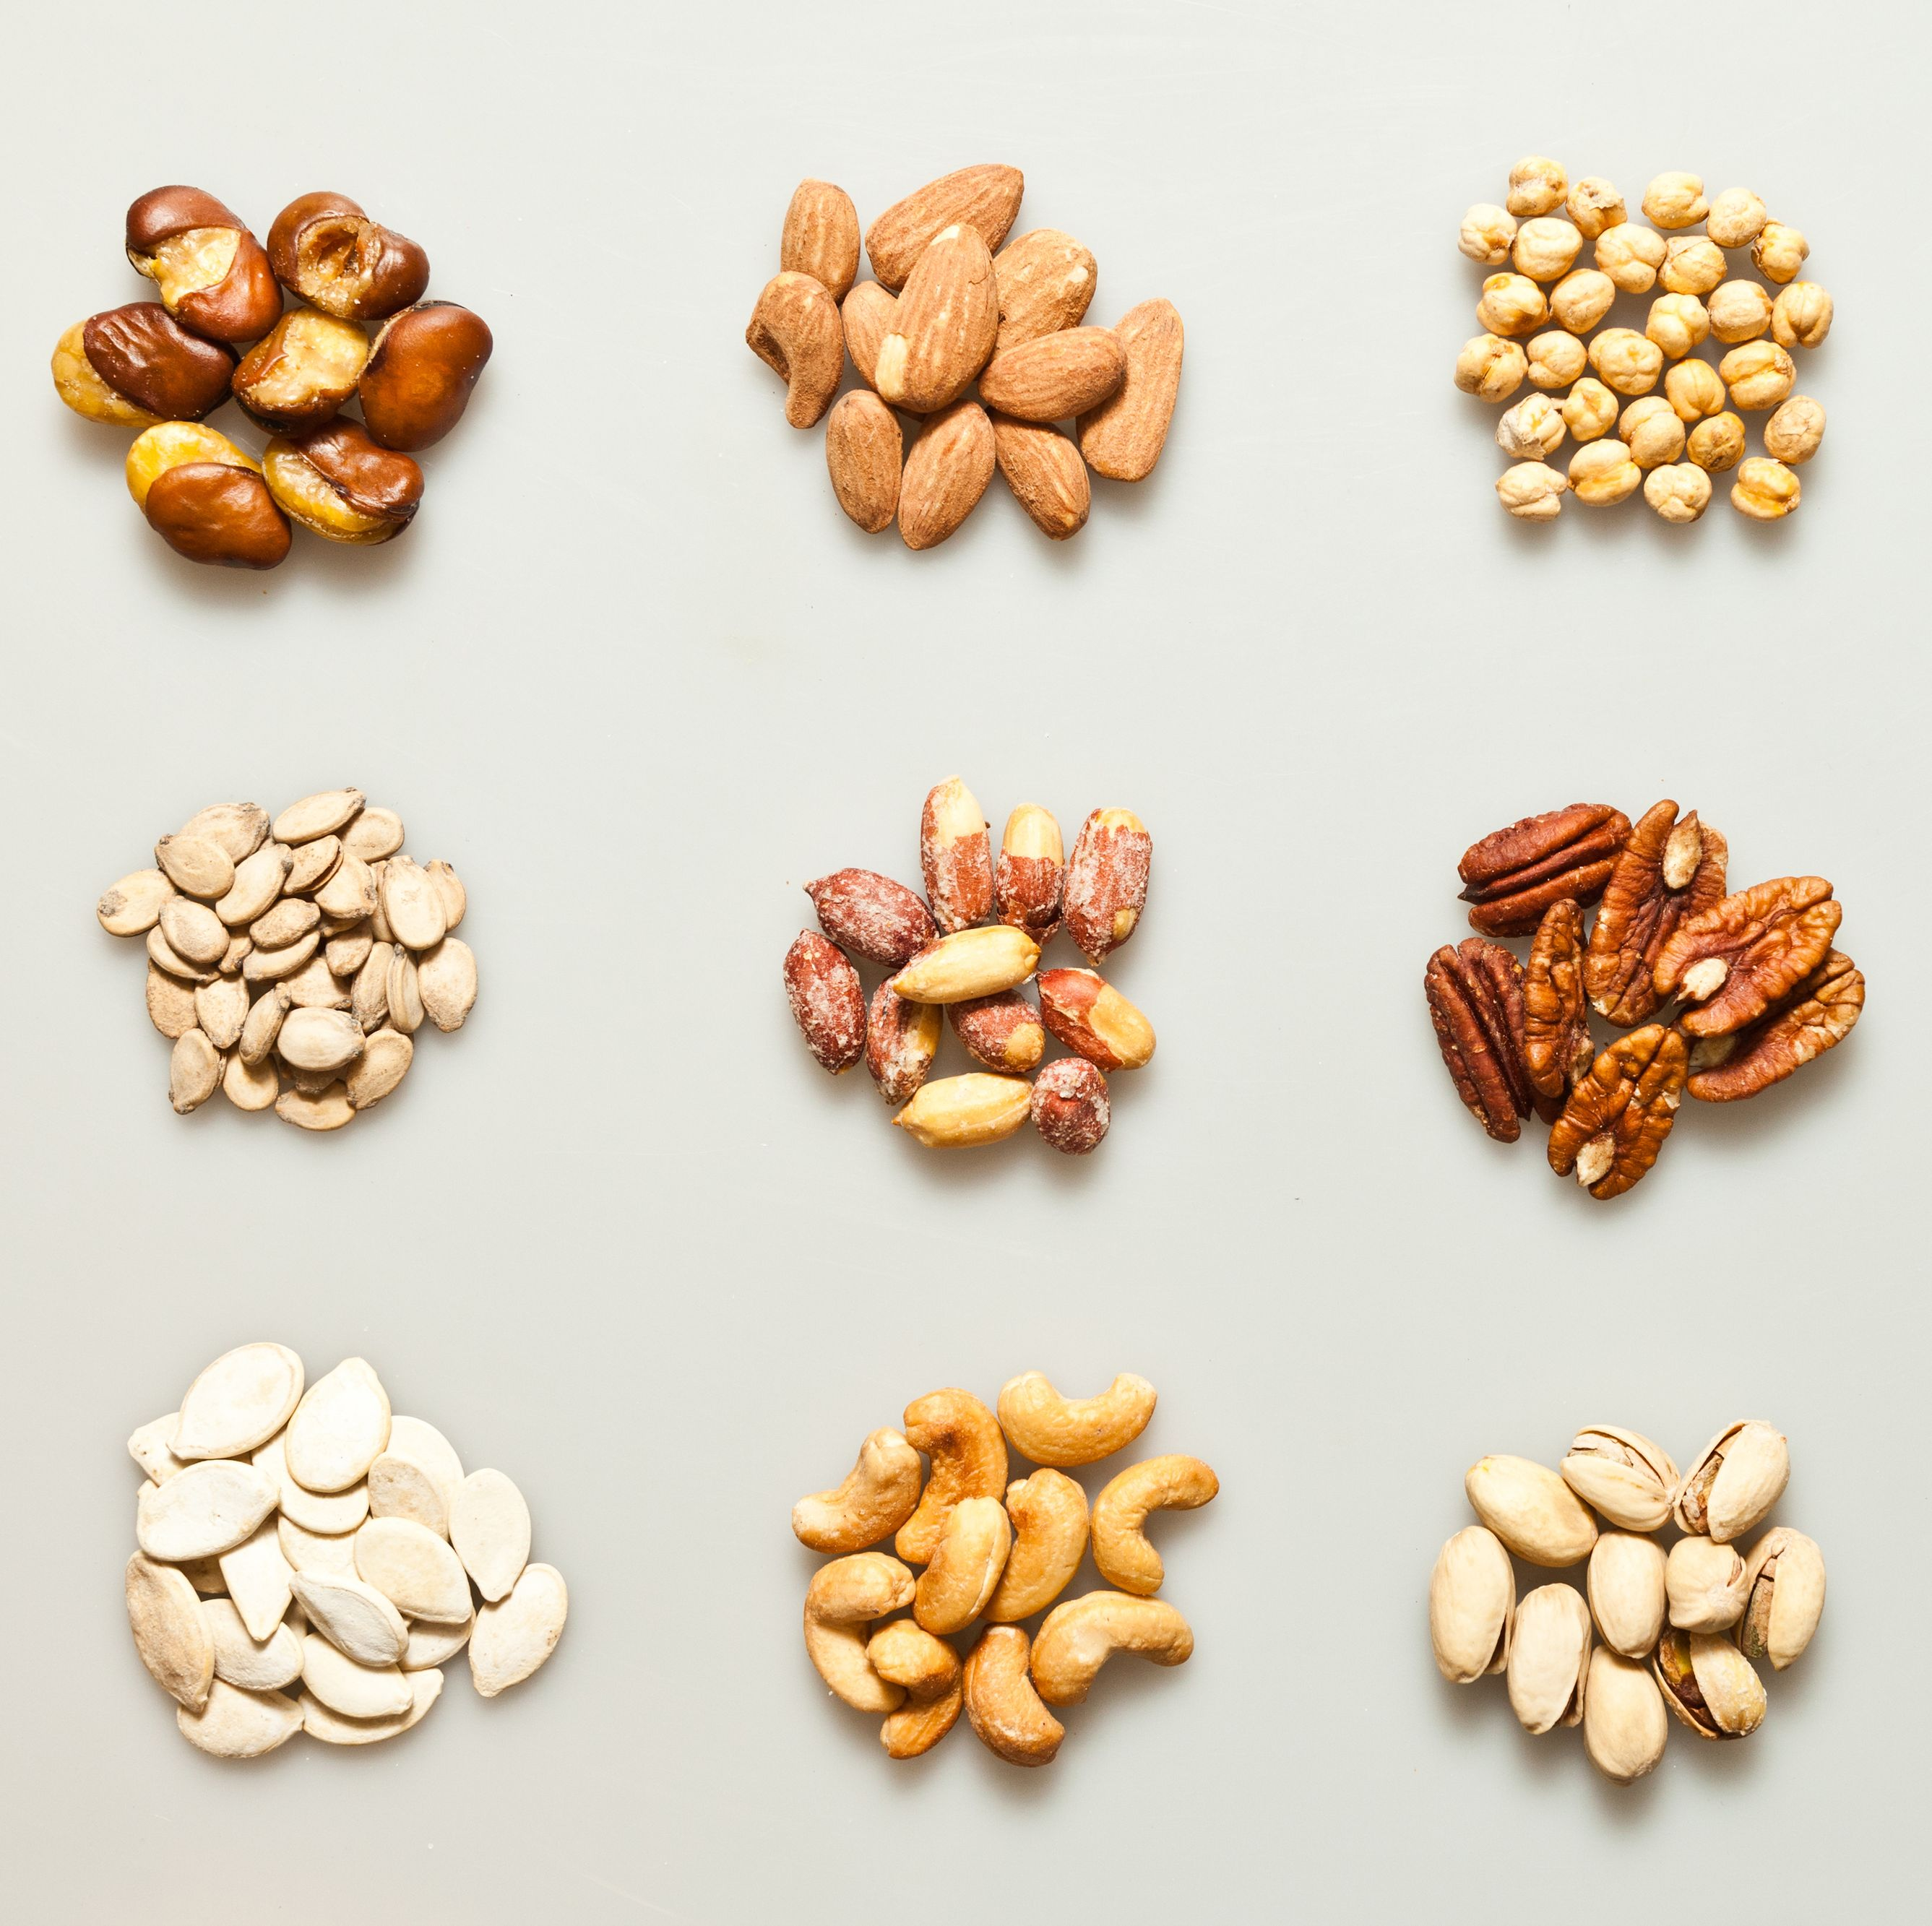 The 7 Healthiest Nuts You Can Eat